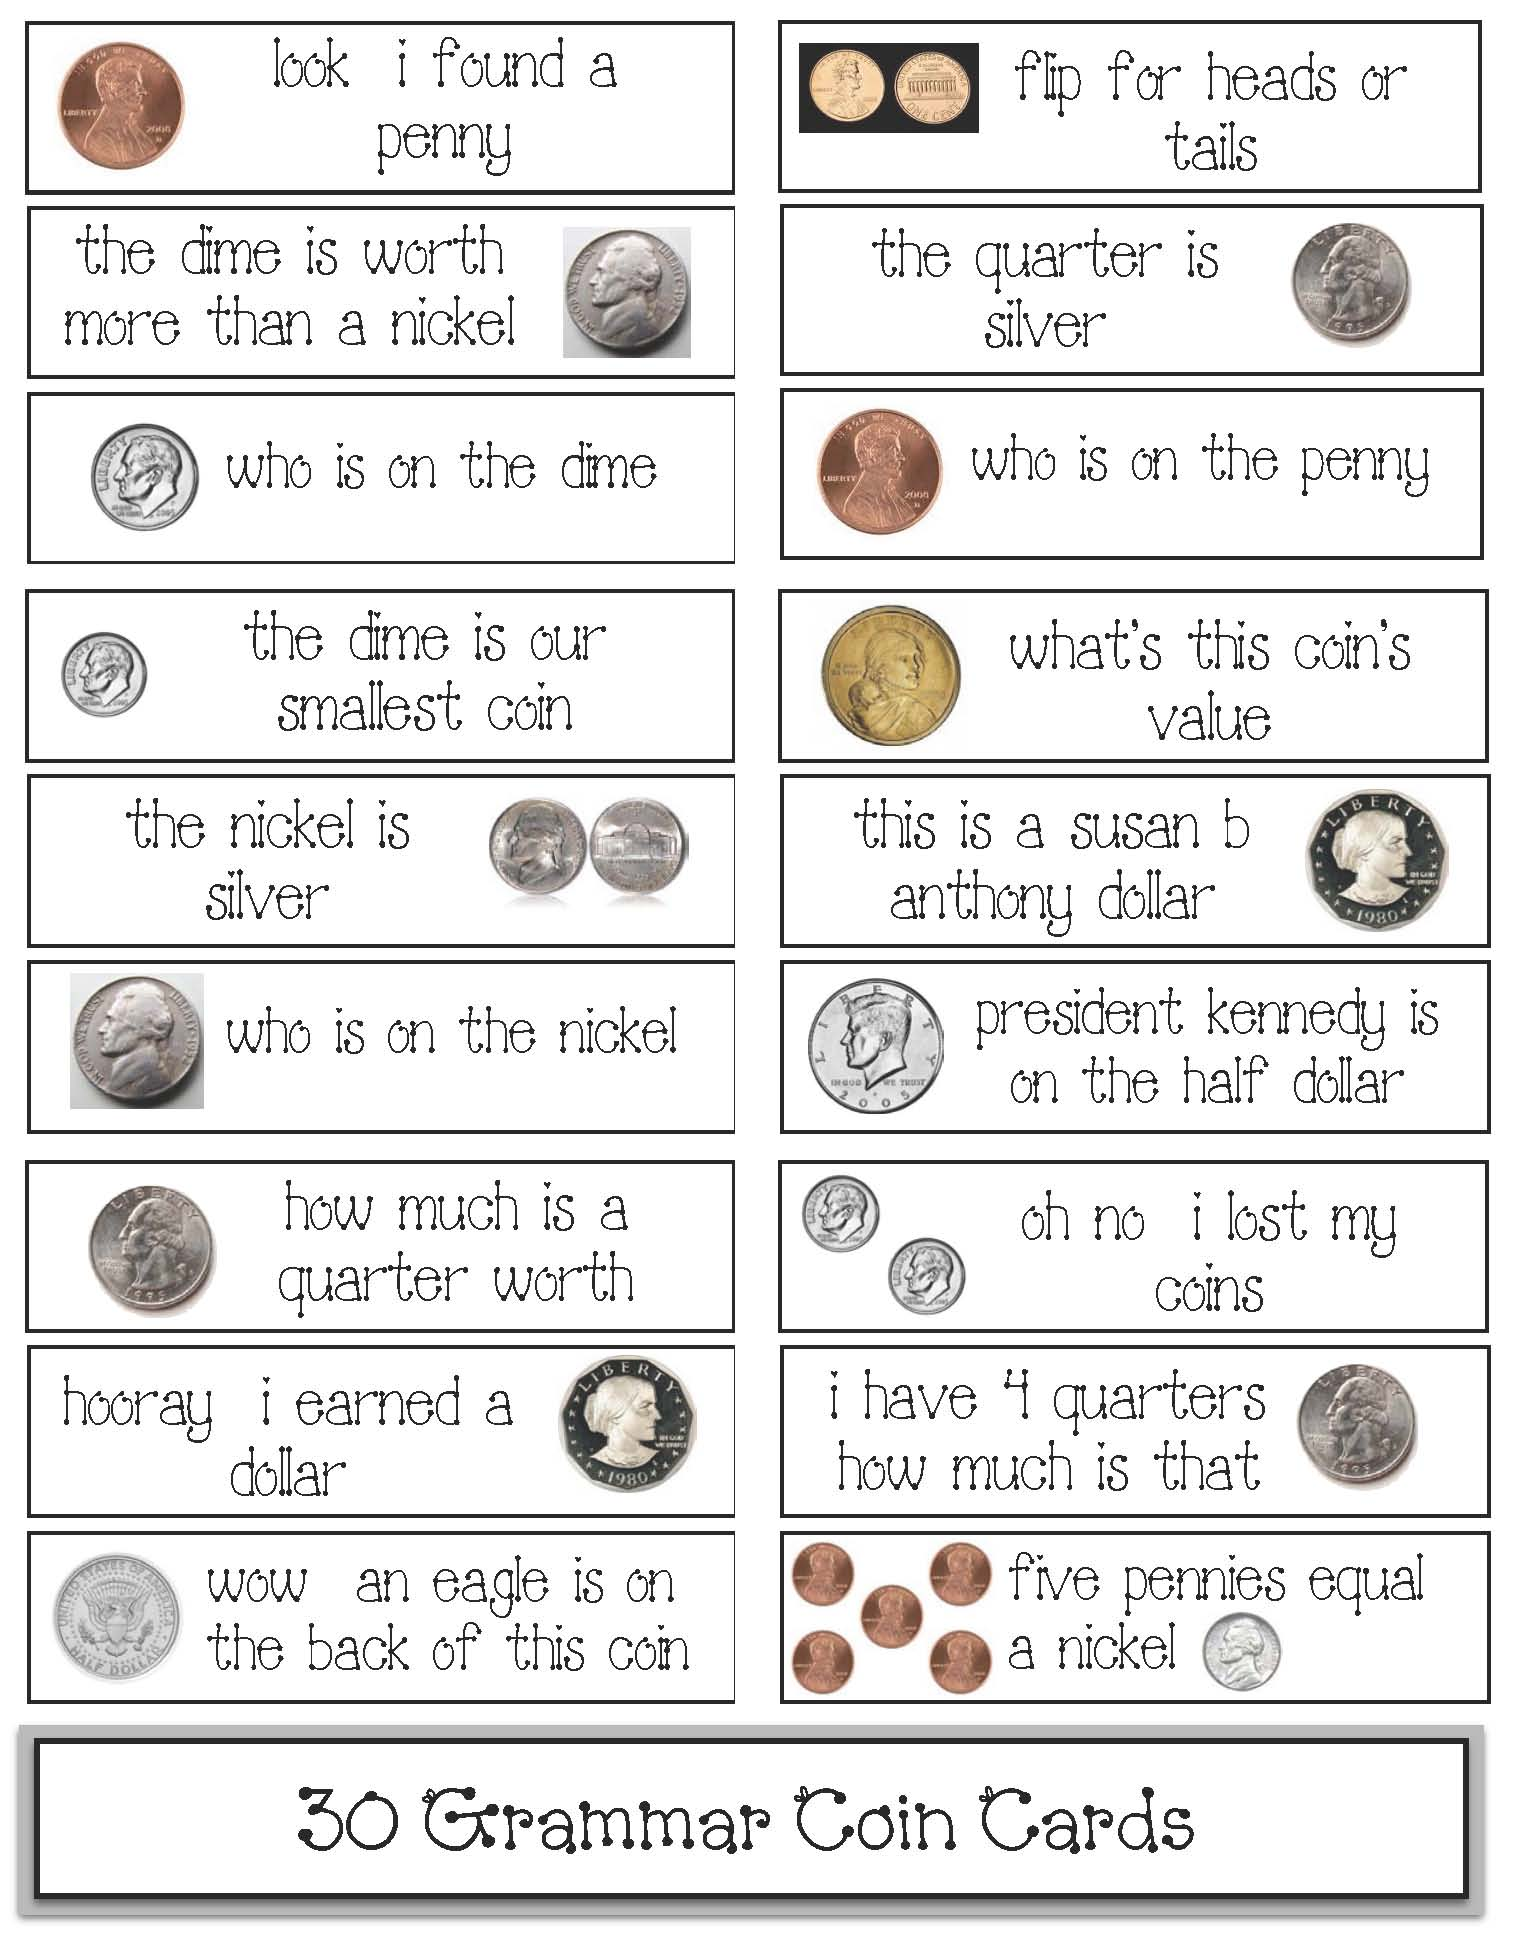 10 frames templates, 10 frames activities, end punctuation activities, beginning capitalization activities, 10 frames with coins on them, 10 frame cards, ten frames templates, ten frames activities, coin activities, coin lessons, coin centers, coin worksheets, coin crafts, coin games, identifying coins, coin posters, coin songs, coin poems, file folder facts, file folder activities, file folder reports, dice games, math games, coin games, presidents day activities, paper coin templates, coin crafts,